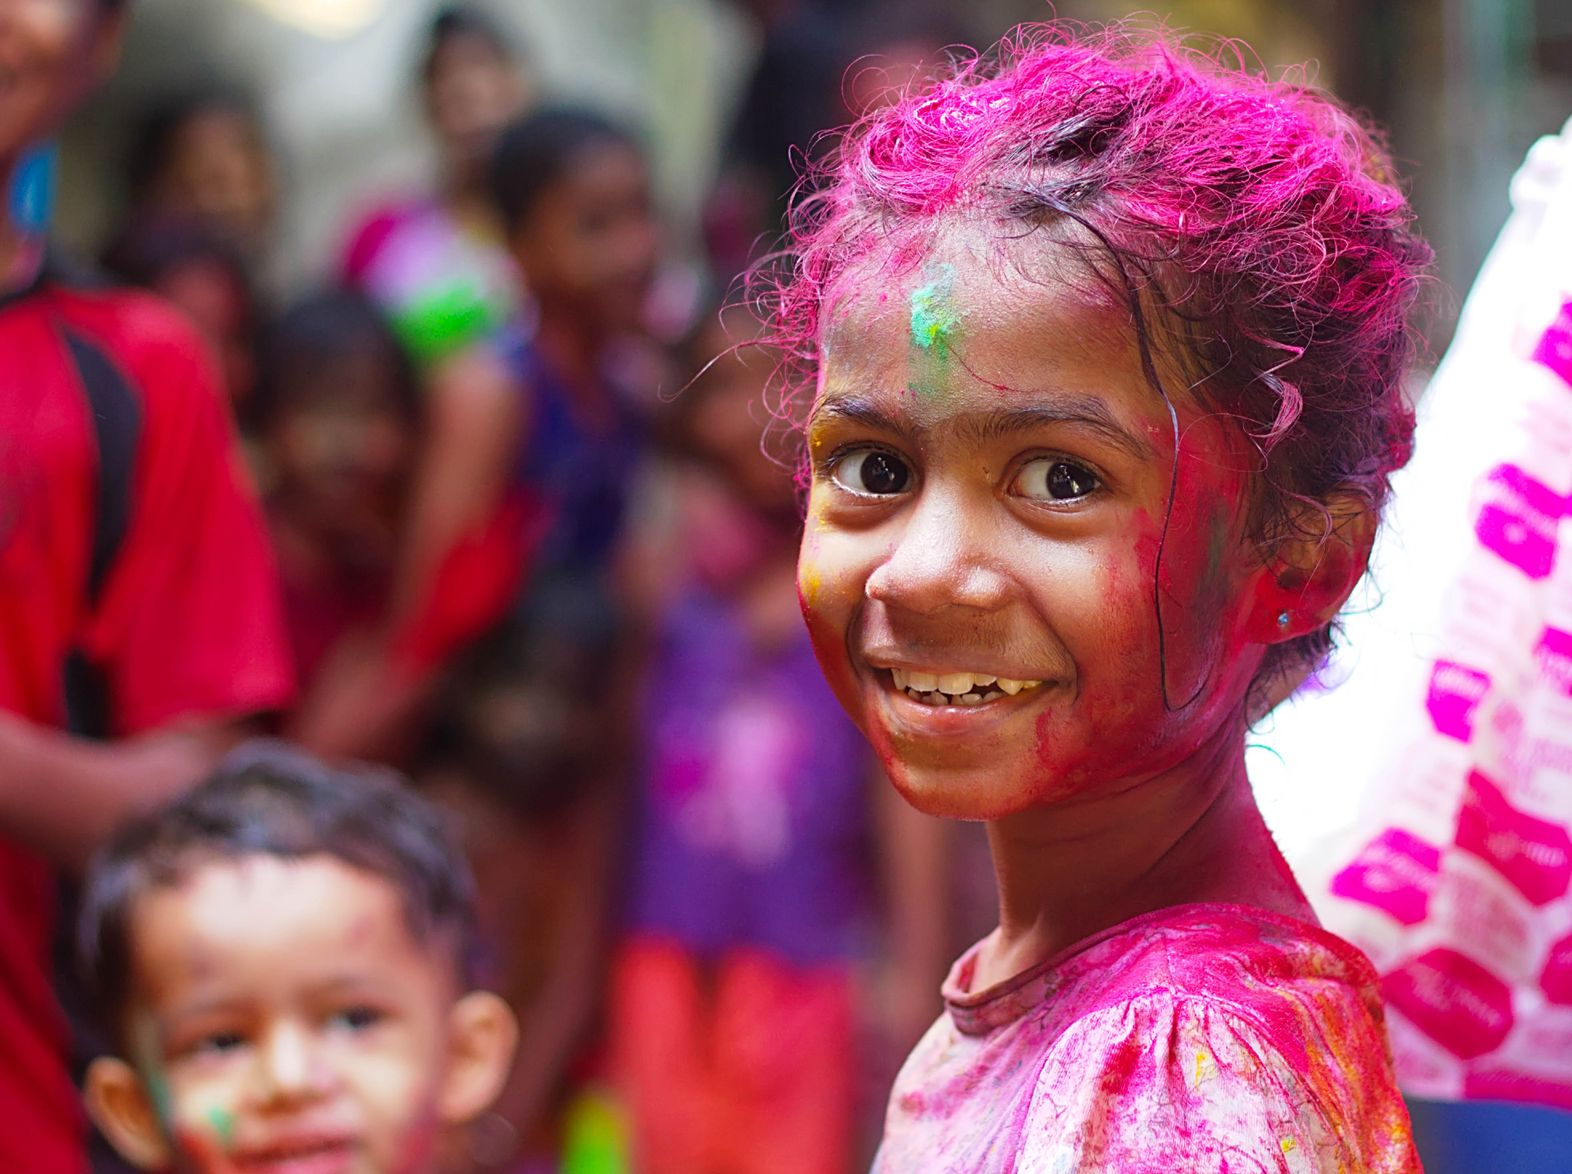 Female child with paint all over her face and hair smiling into the camera